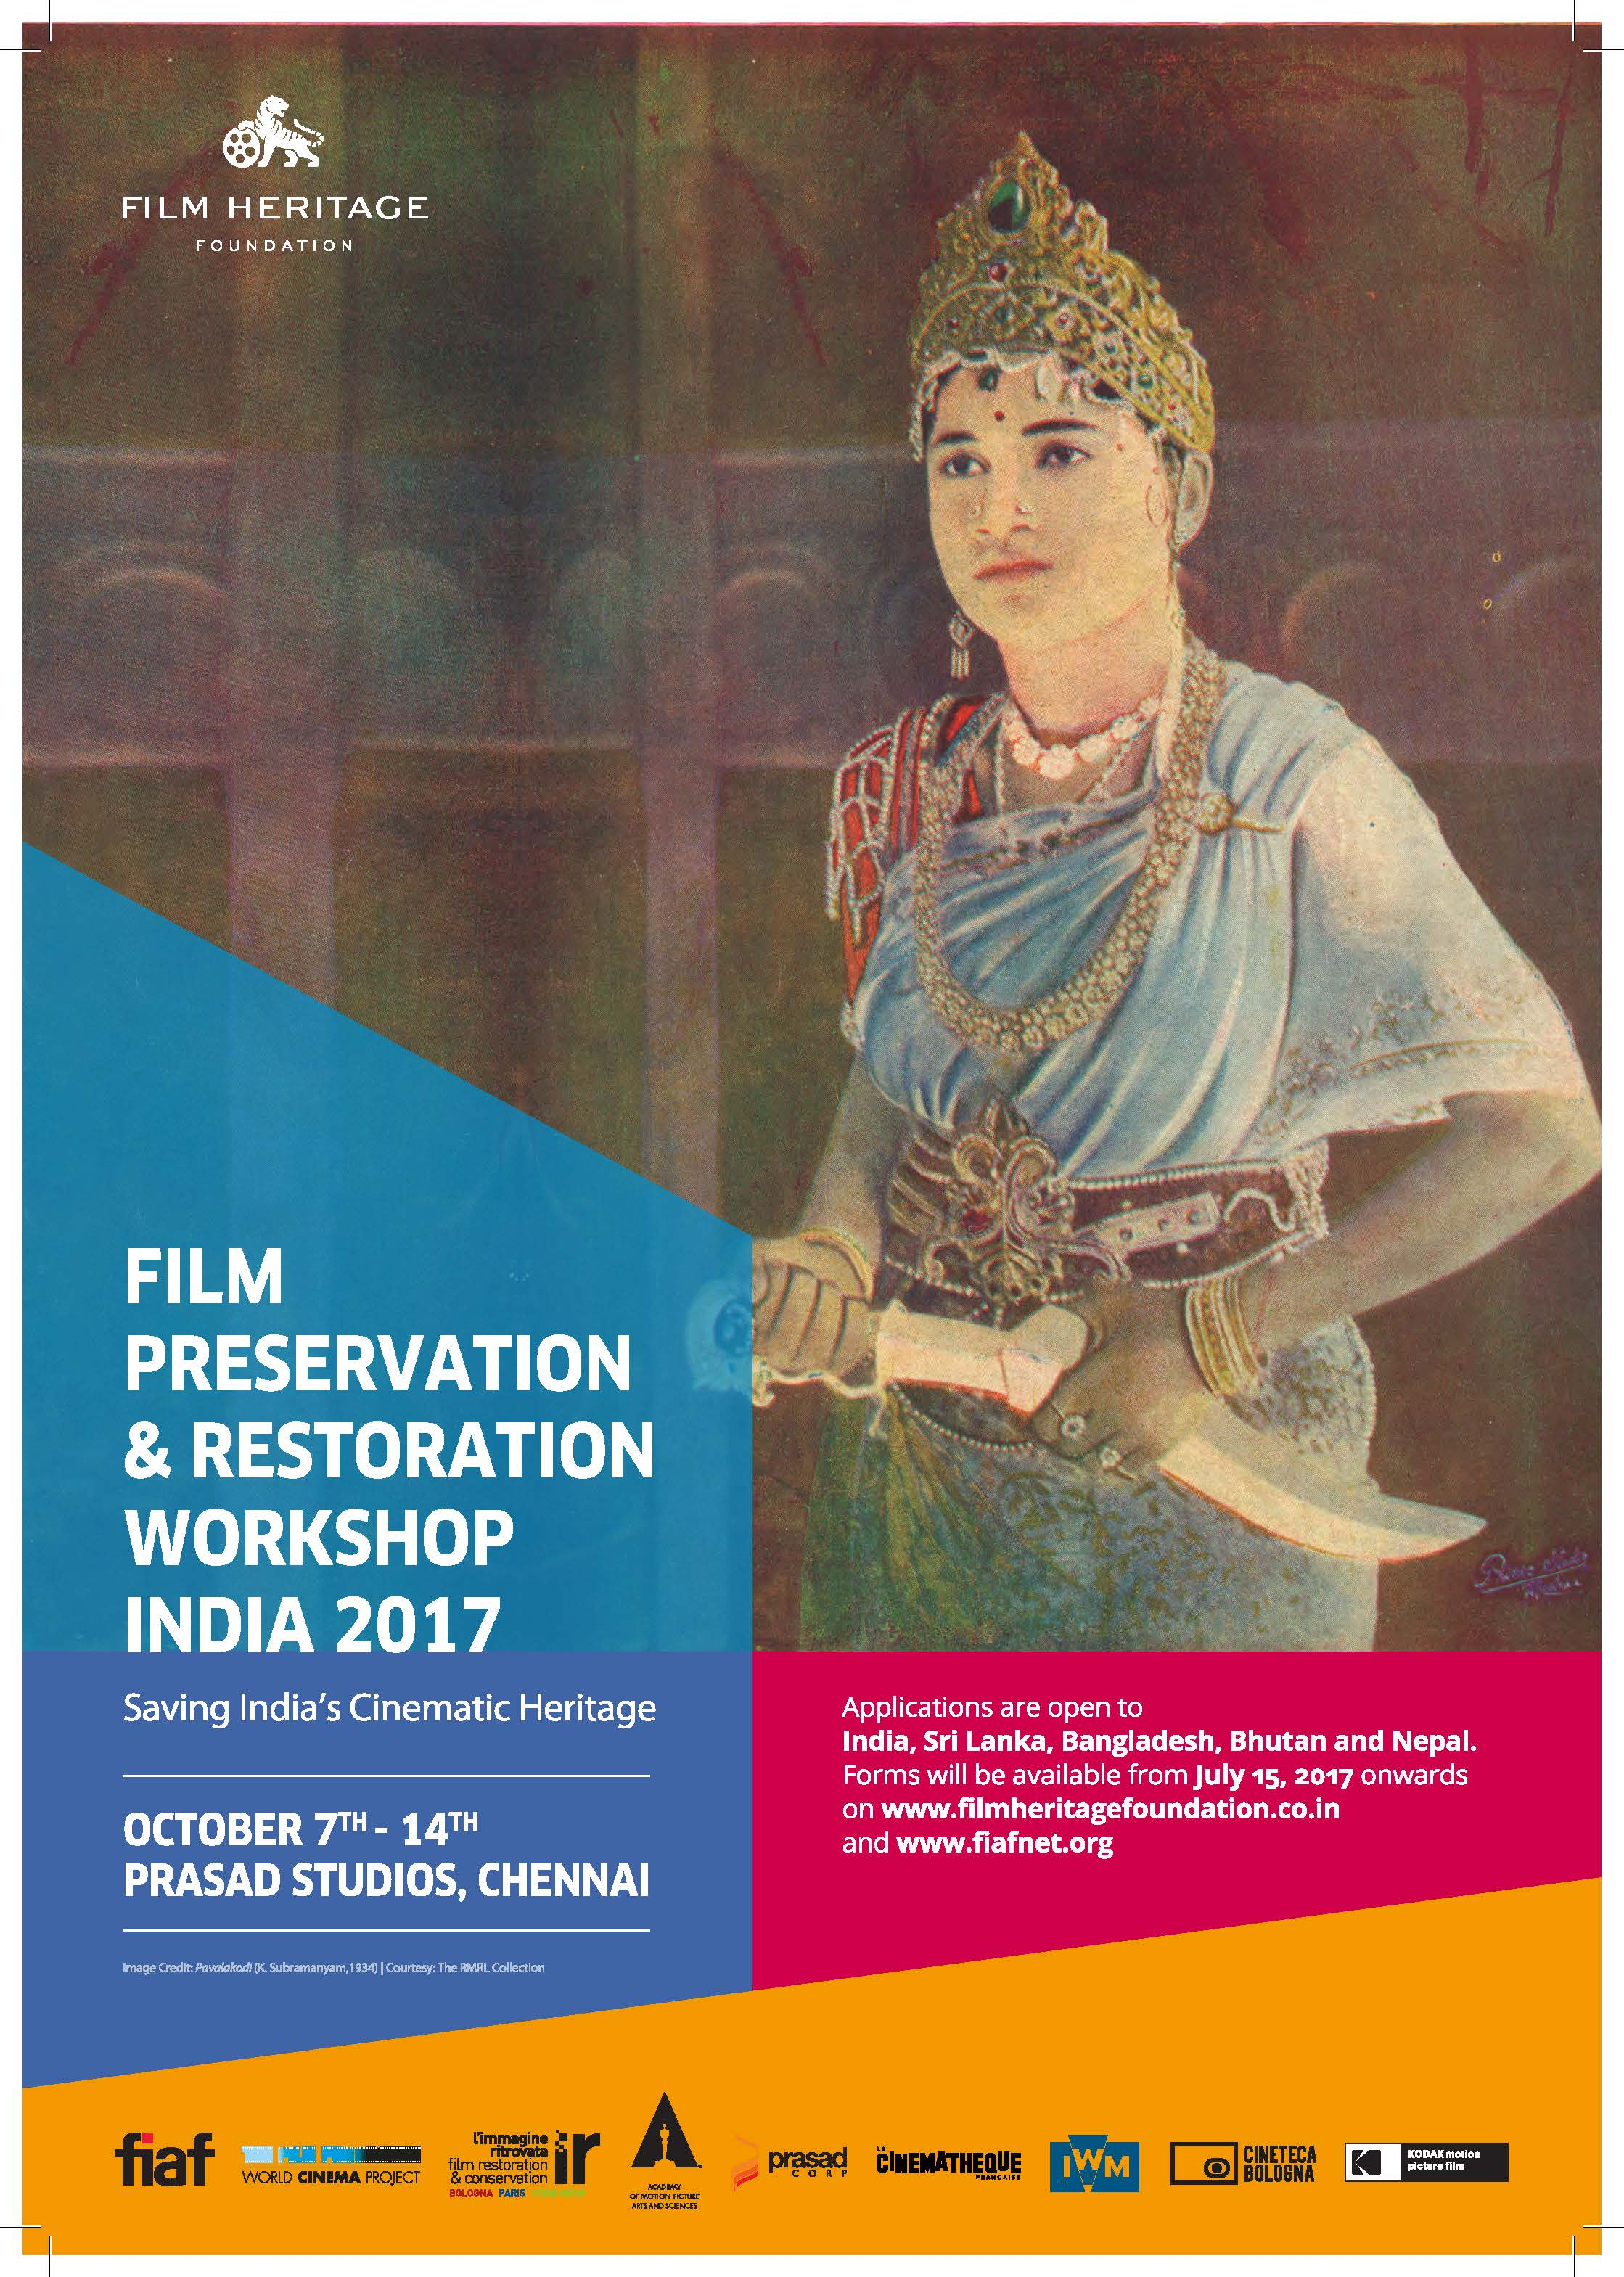 Film Preservation & Restoration Workshop India 2017 - Film